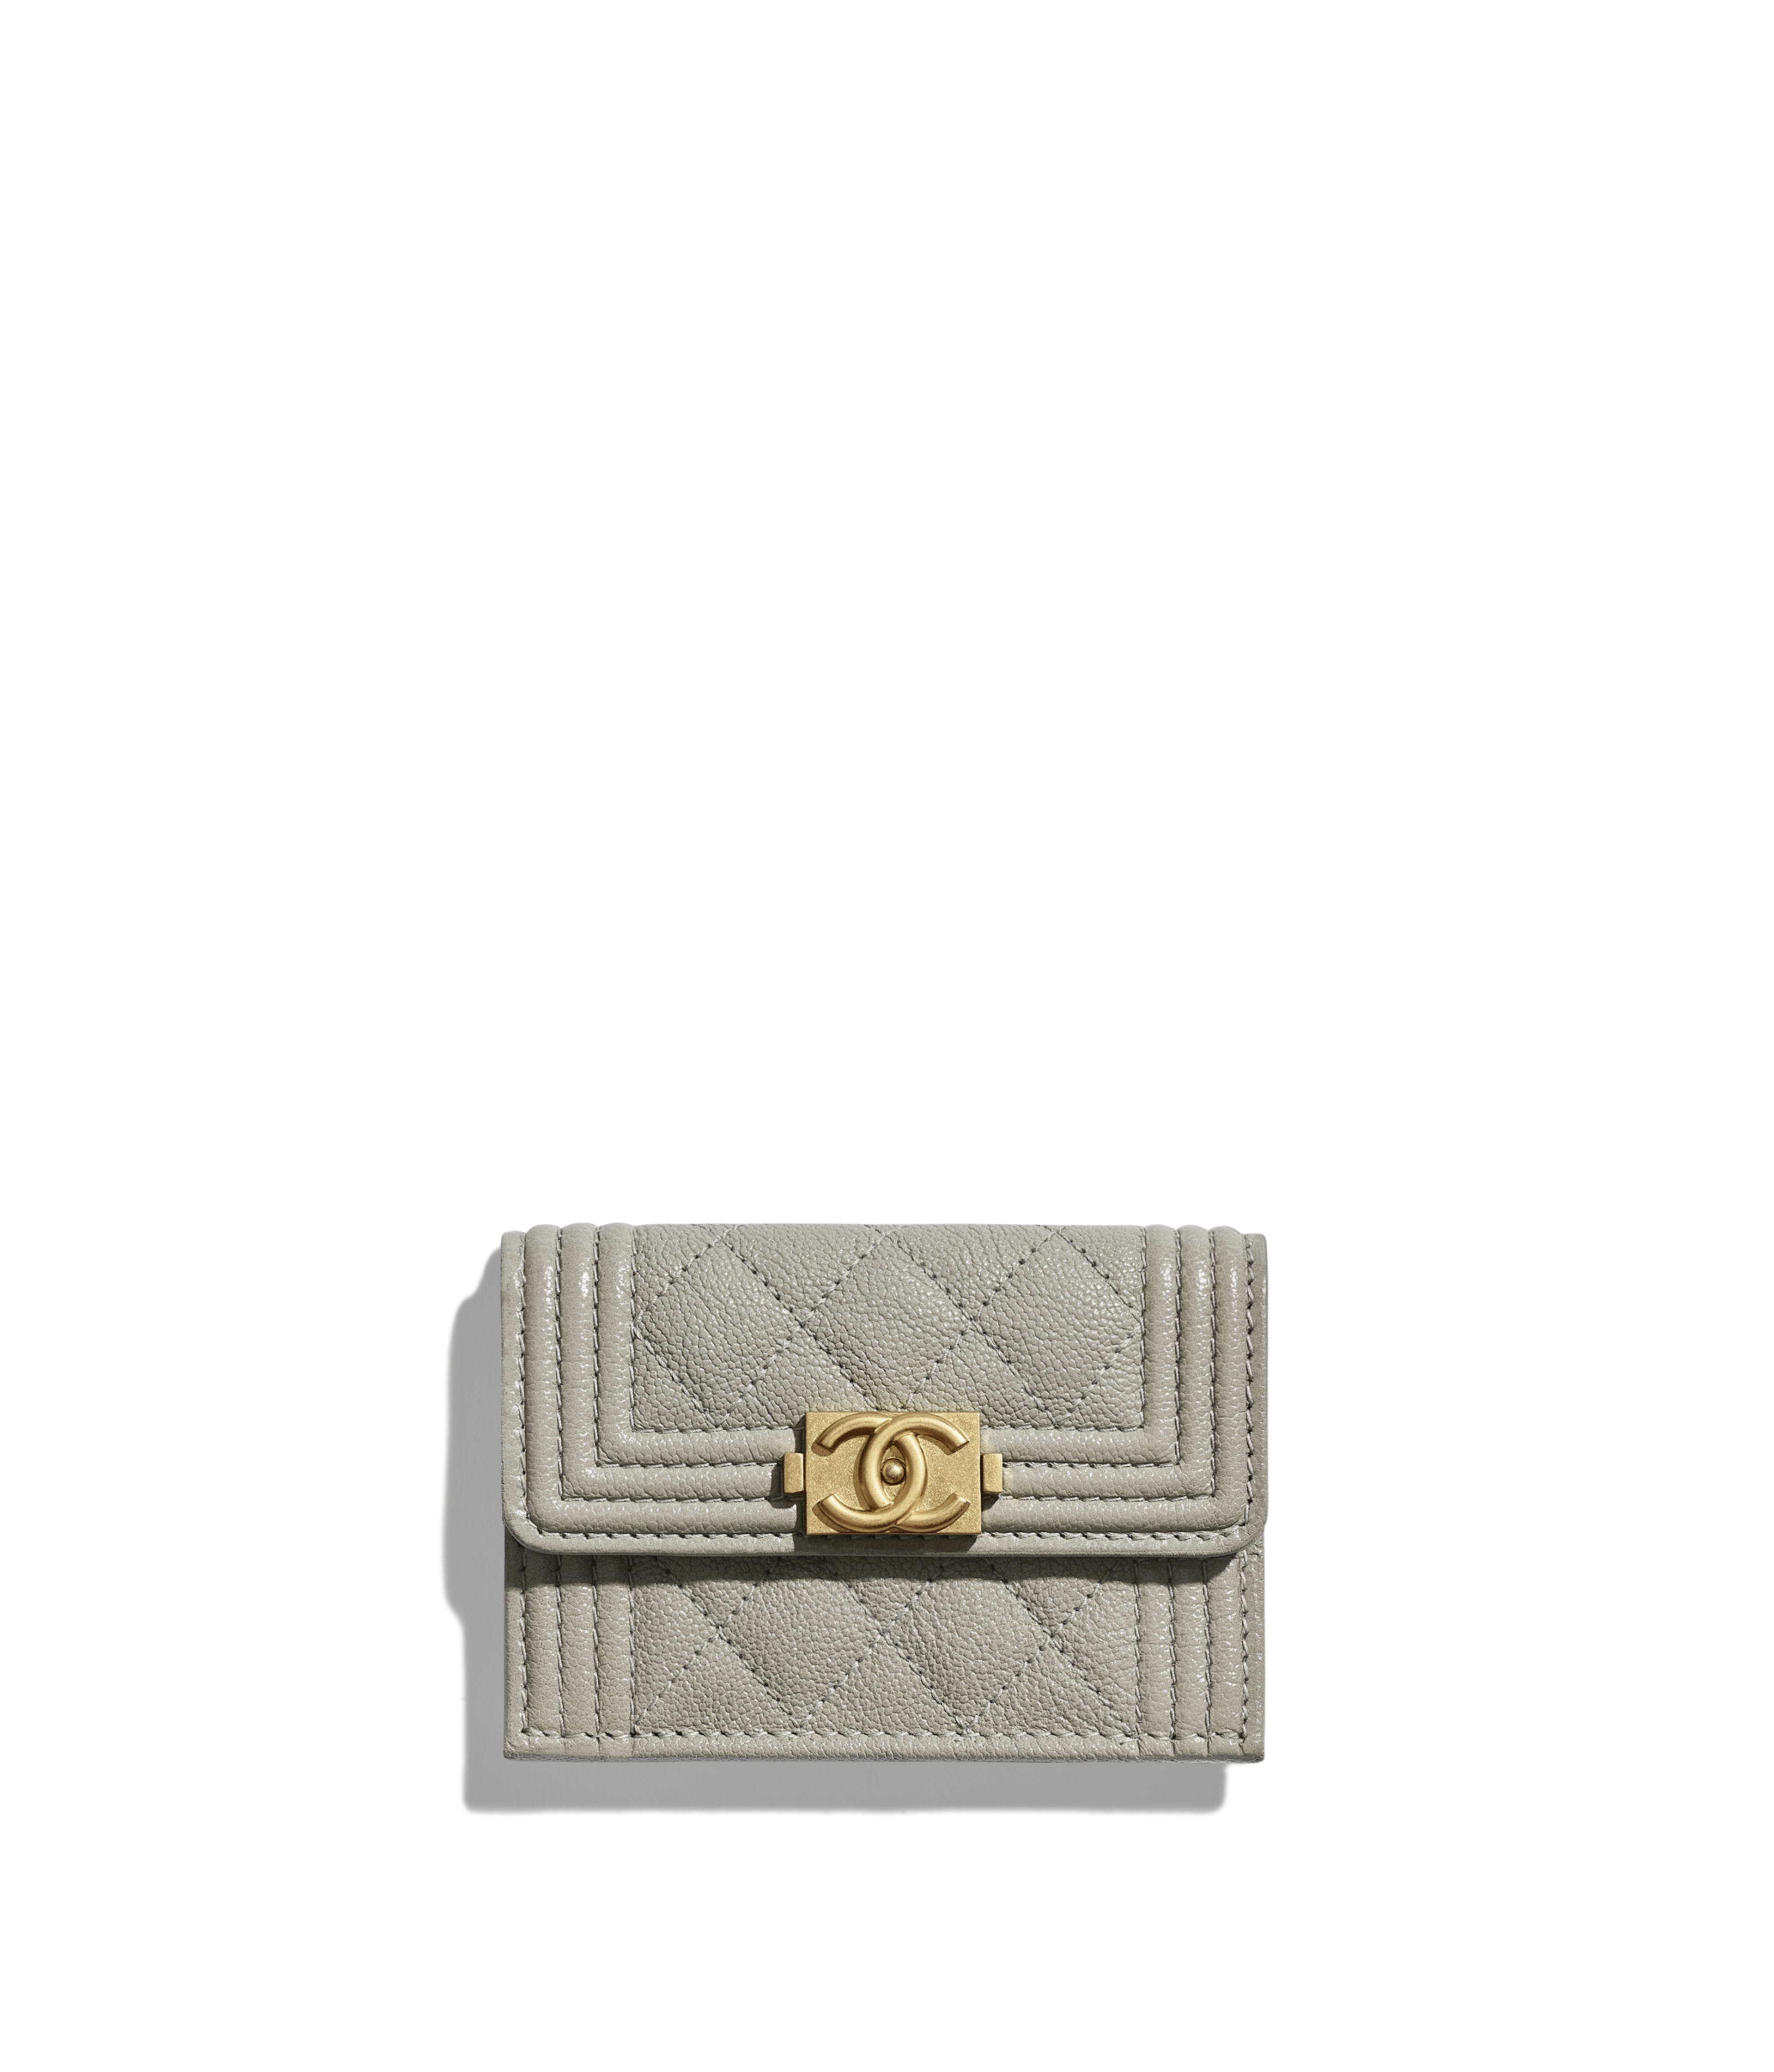 50bf440d4cbb BOY CHANEL Small Flap Wallet Grained Calfskin & Gold-Tone Metal, Gray Ref.  A84432Y83621N0416